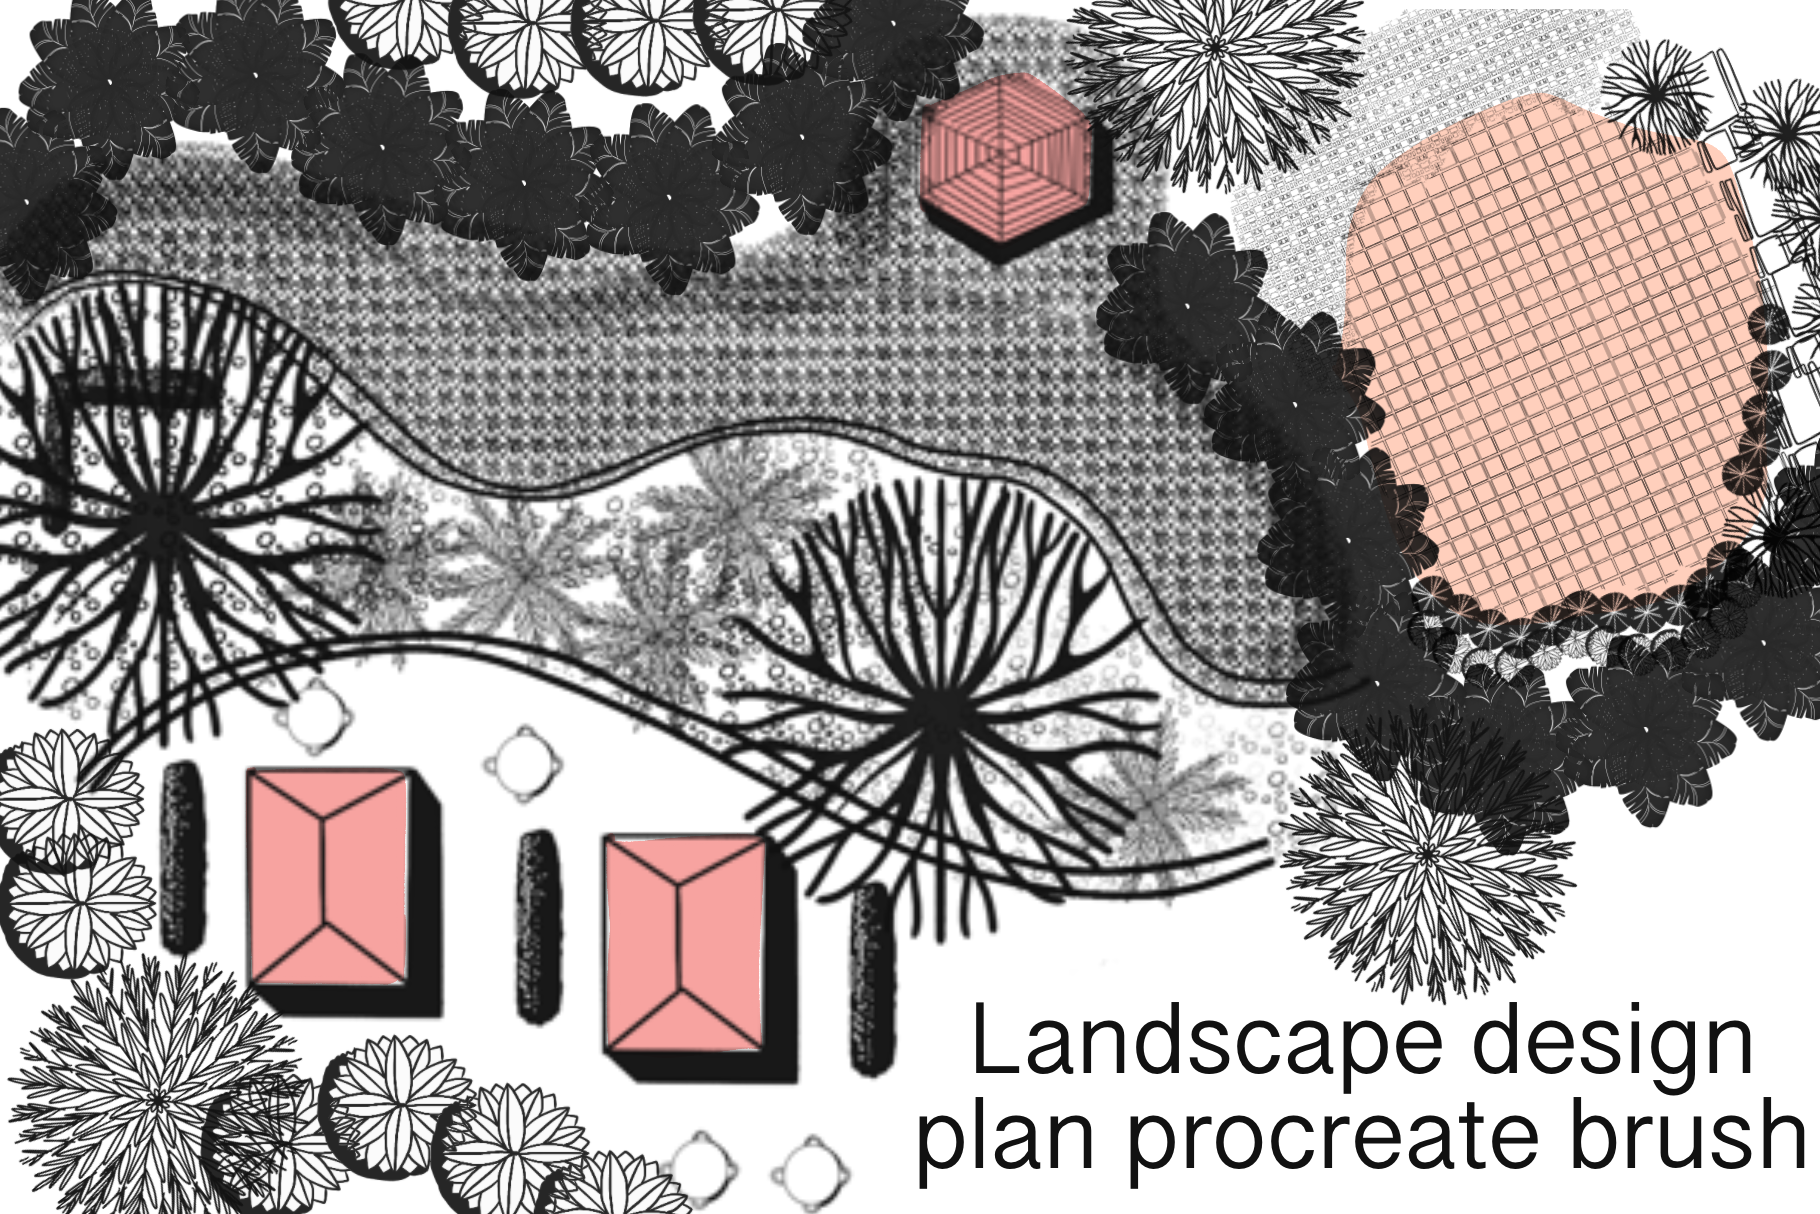 Landscape design plan procreate brush example image 1